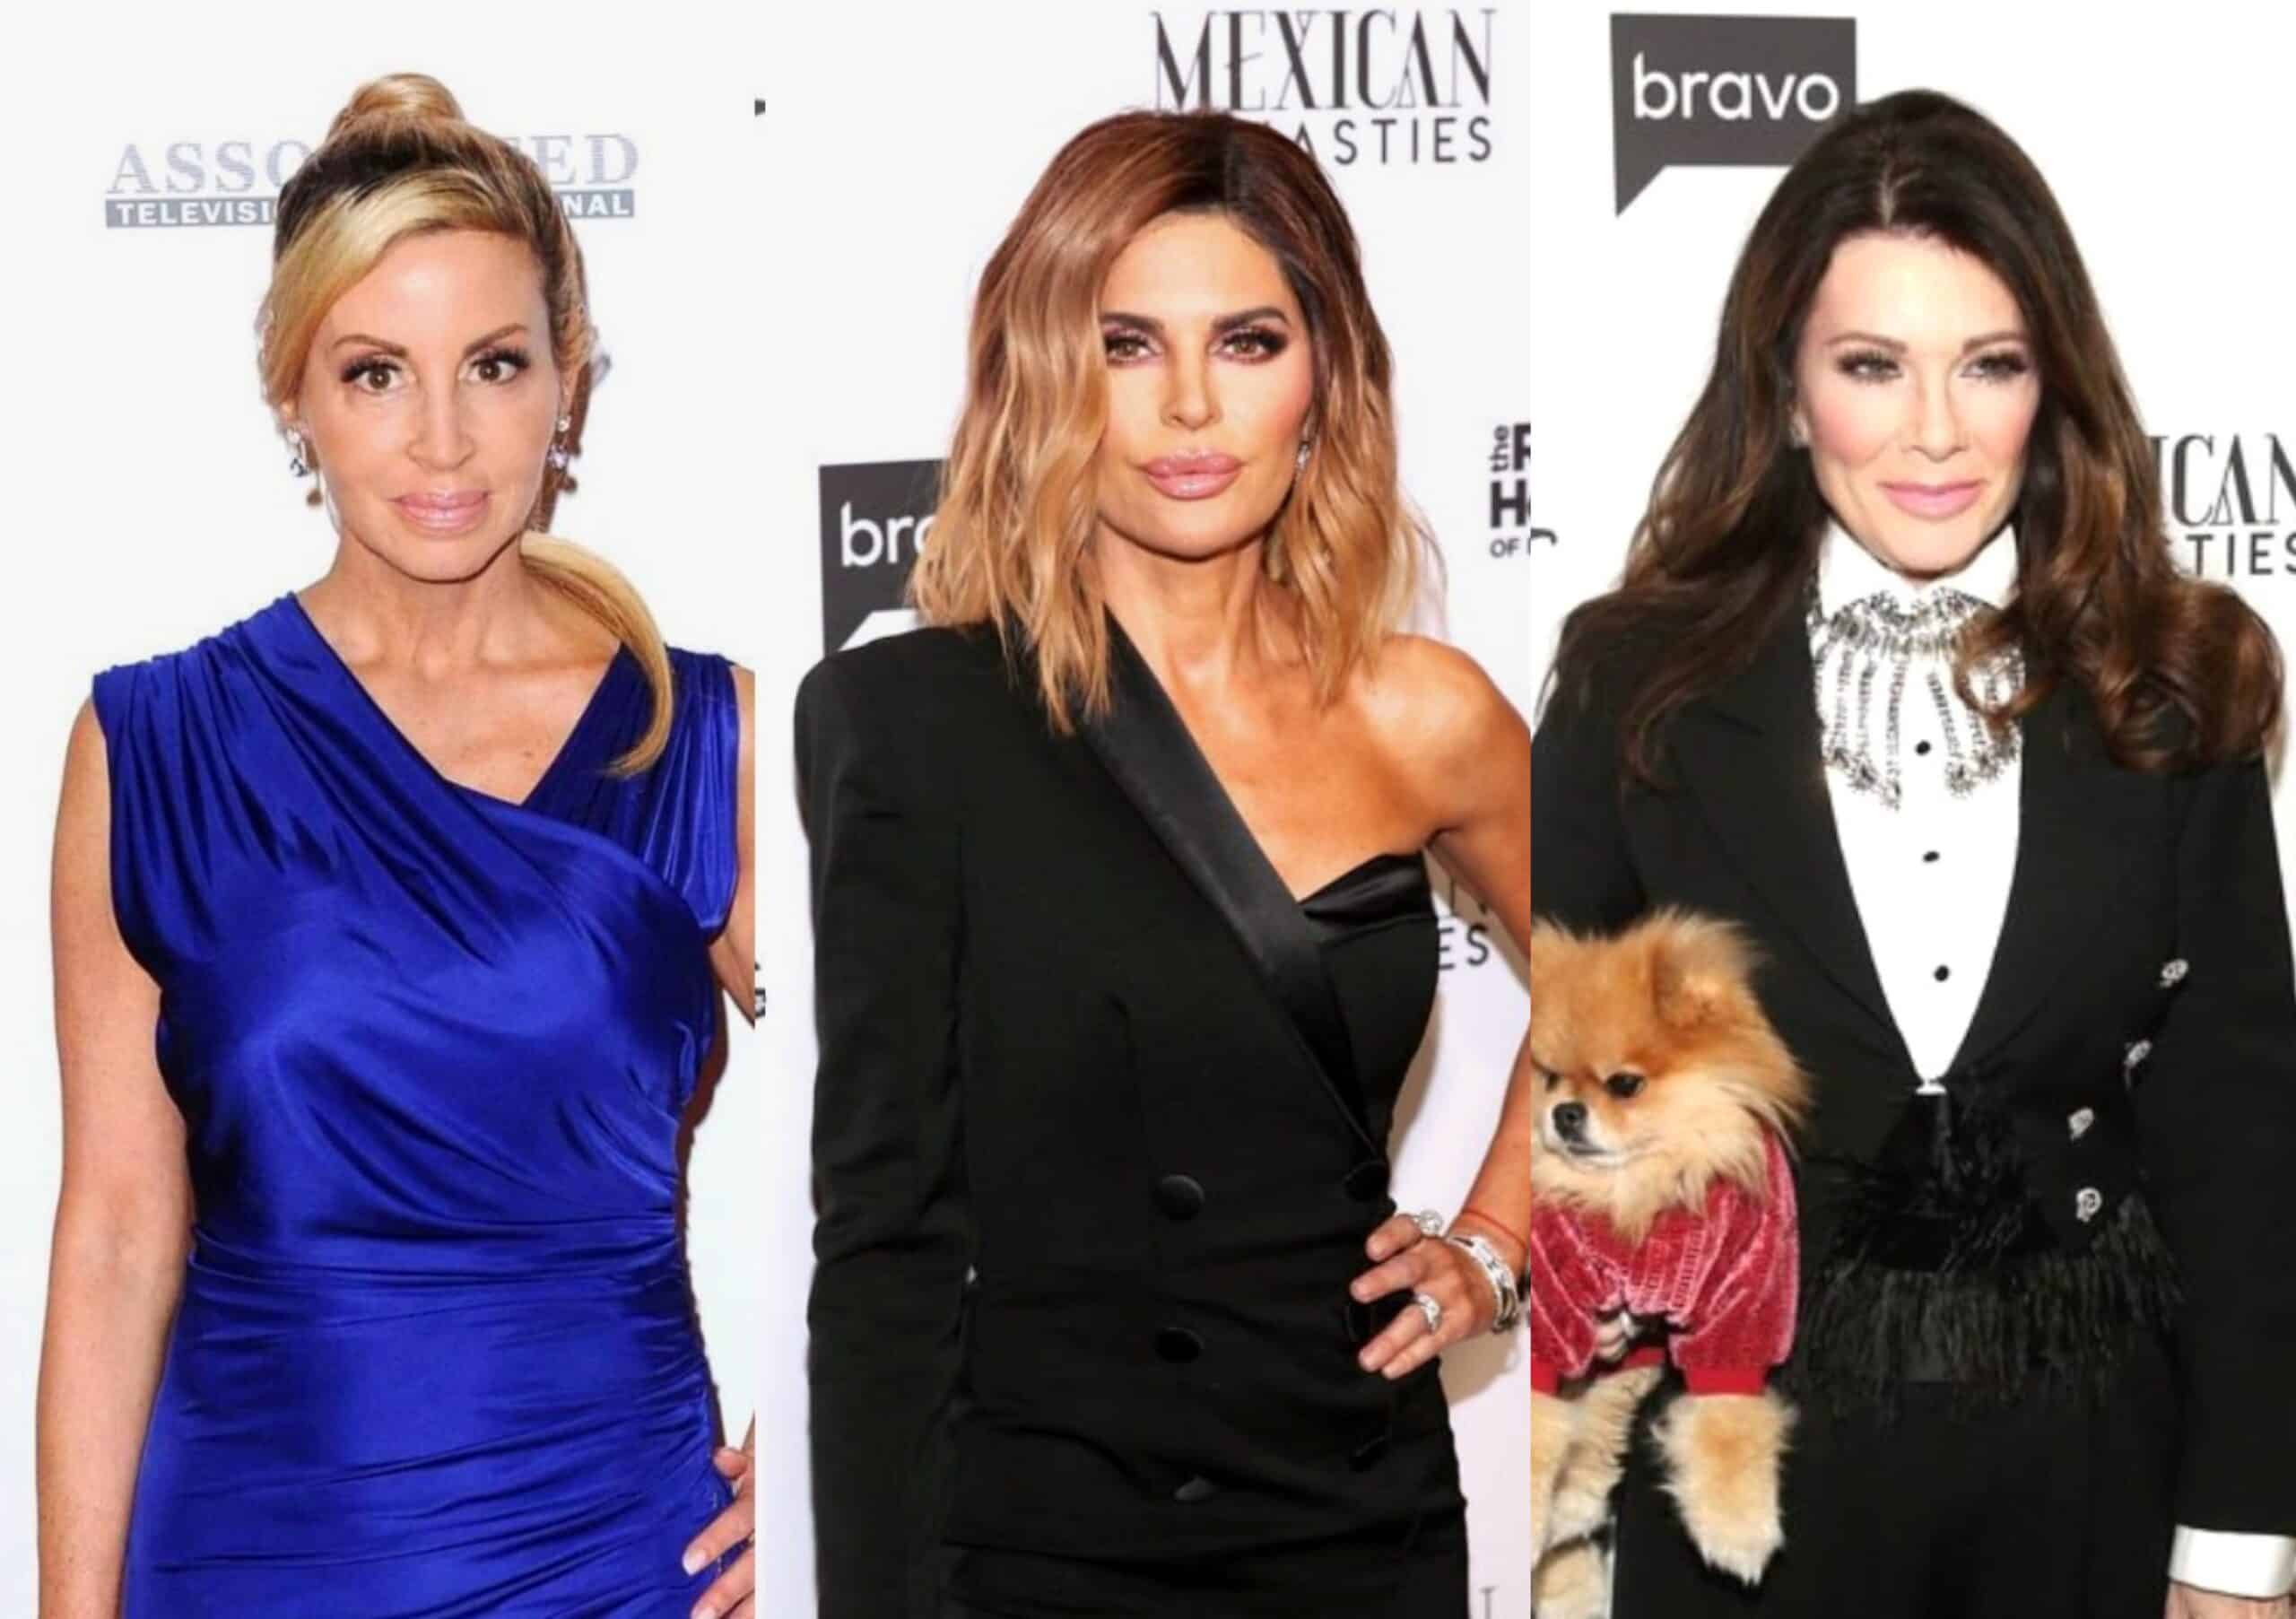 "RHOBH's Camille Grammer Slams 'Sociopath' Lisa Rinna for Not Always 'Owning it,' Calls Her ""Hypocrite"" and Mentions Her Insensitive Pill-Topped Cupcake Tweet to Lisa Vanderpump, Reveals if She is Currently in Contact With LVP"